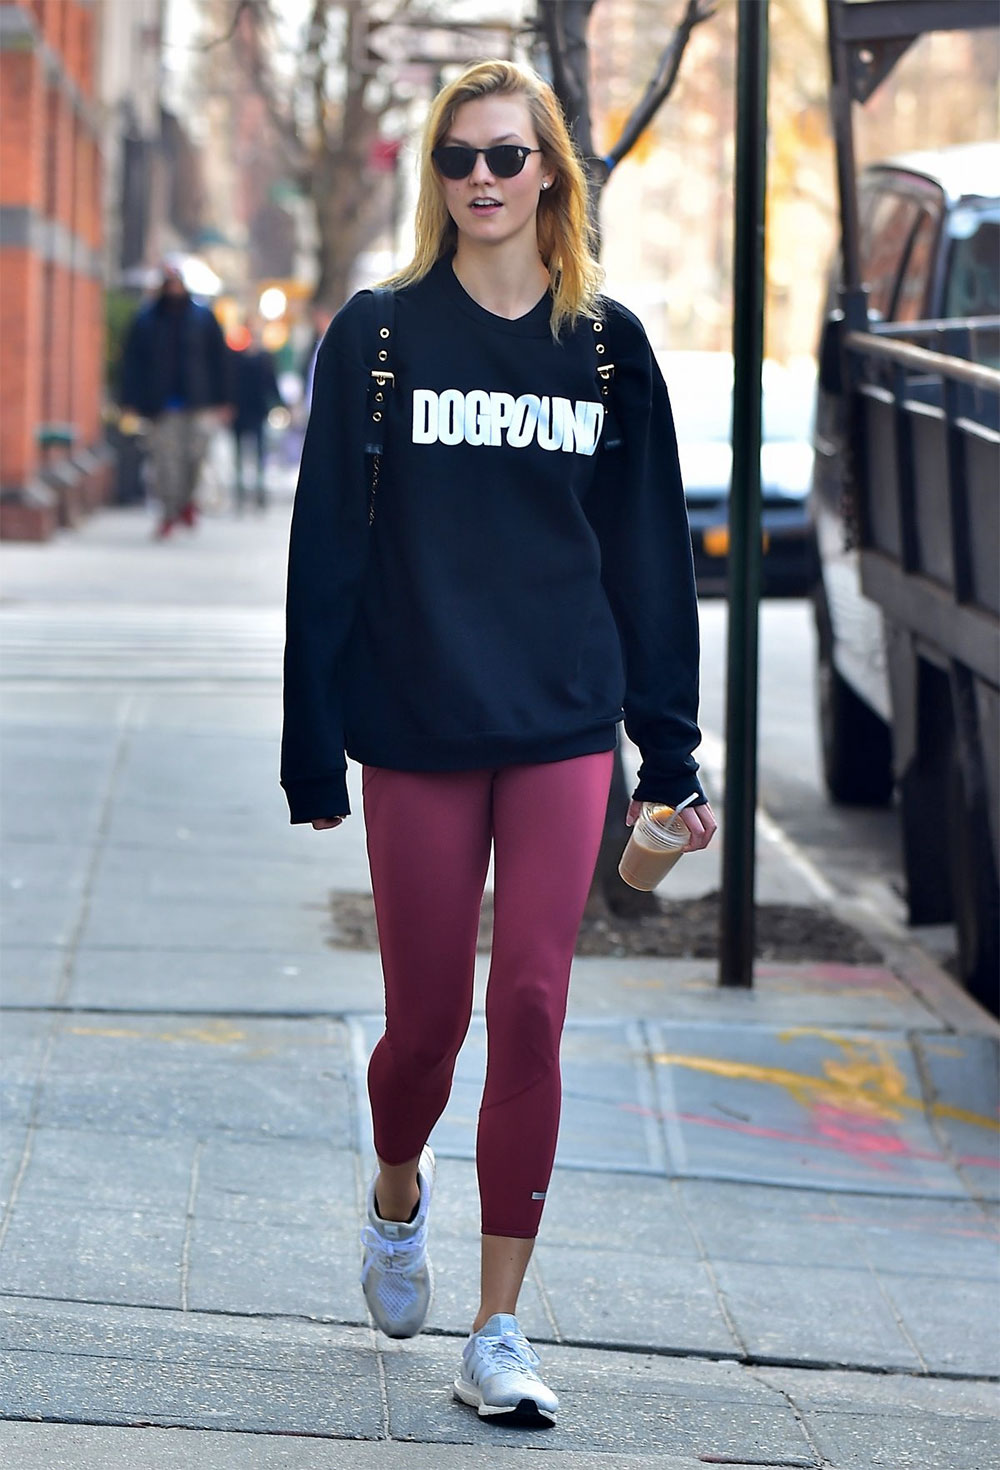 karlie kloss sport outfit